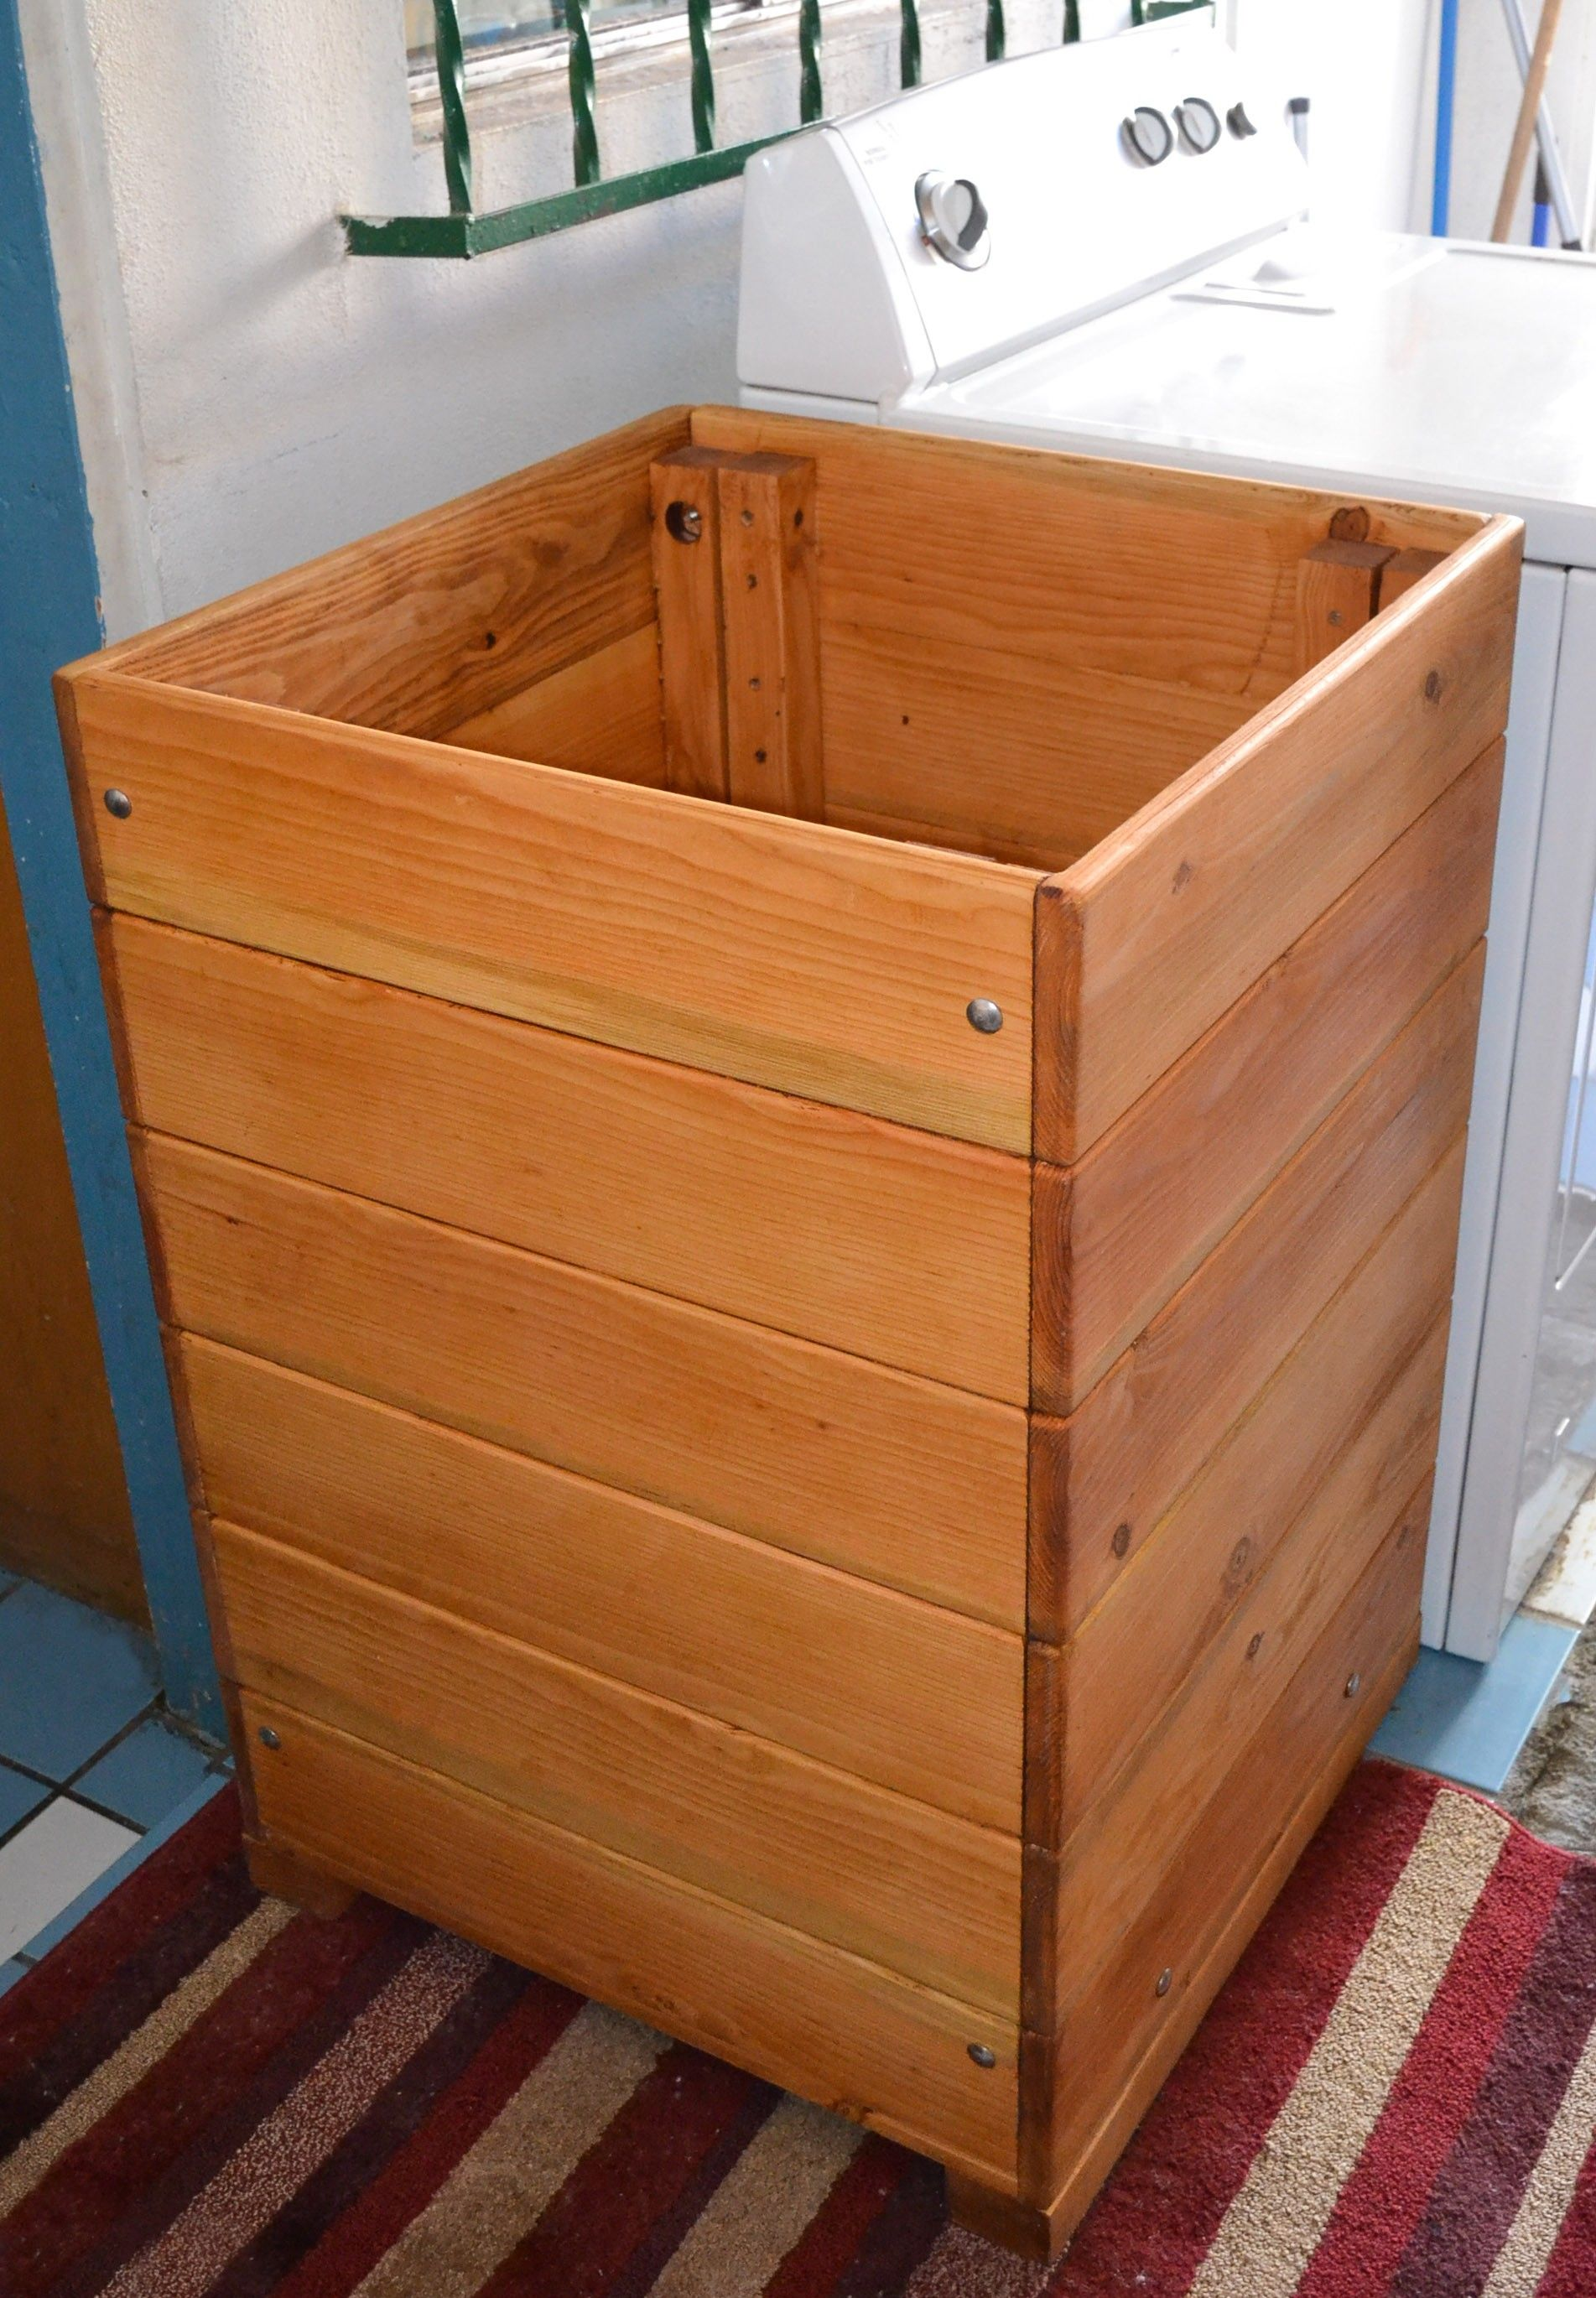 Rustic Wood Laundry Basket Hamper For Wooden Laundry Hamper Furniture Wooden Laundry Hamper Wood Laundry Hamper Wooden Laundry Basket